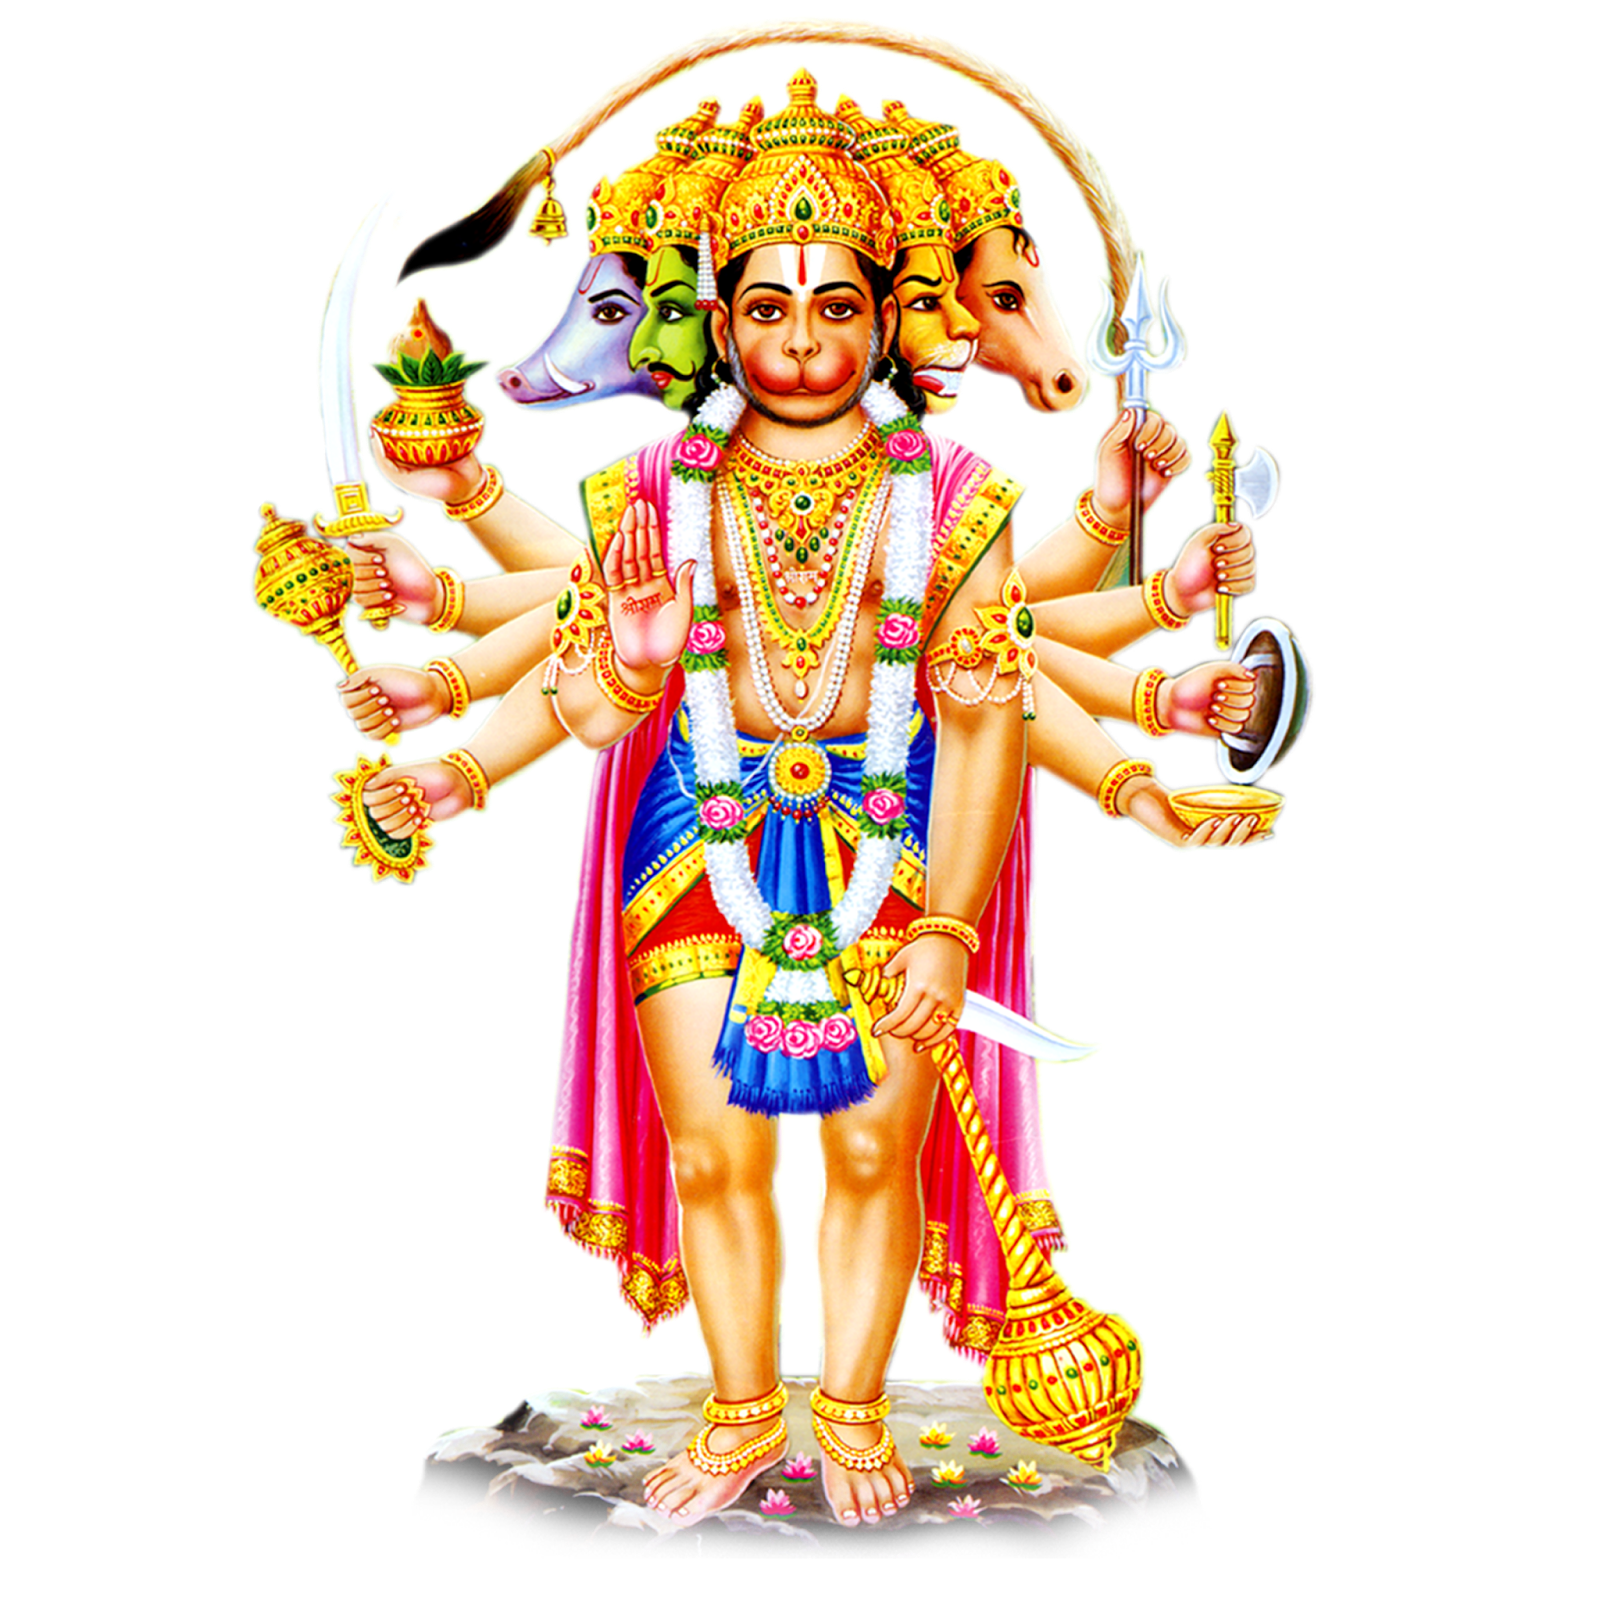 Images have the power to move your emotions like few things in life. panchamukhi hanuman hd png wallpaper free downloads   Ping ...